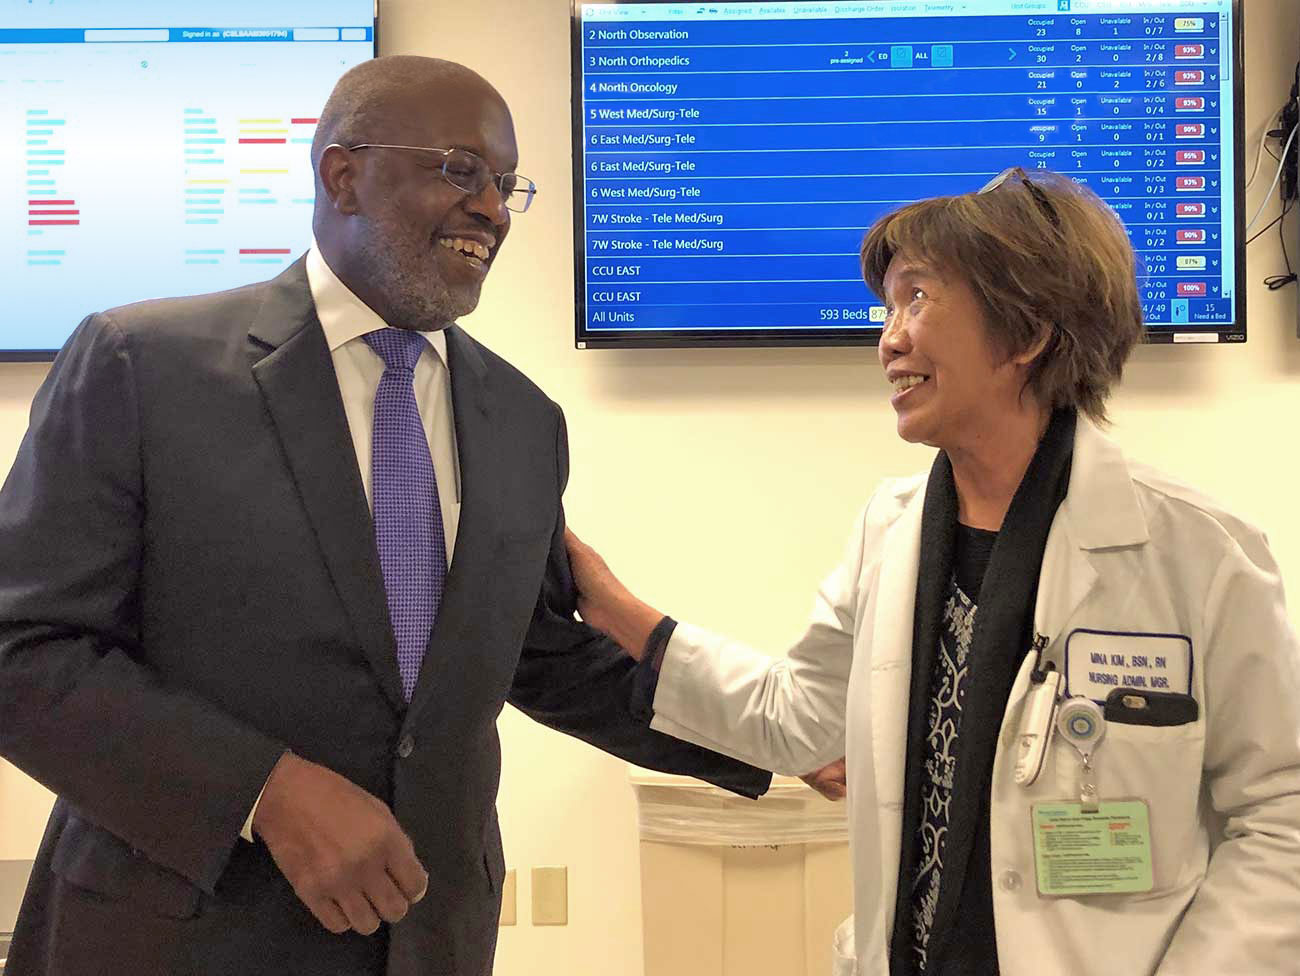 A message from Bernard J. Tyson to Kaiser Permanente's nurses